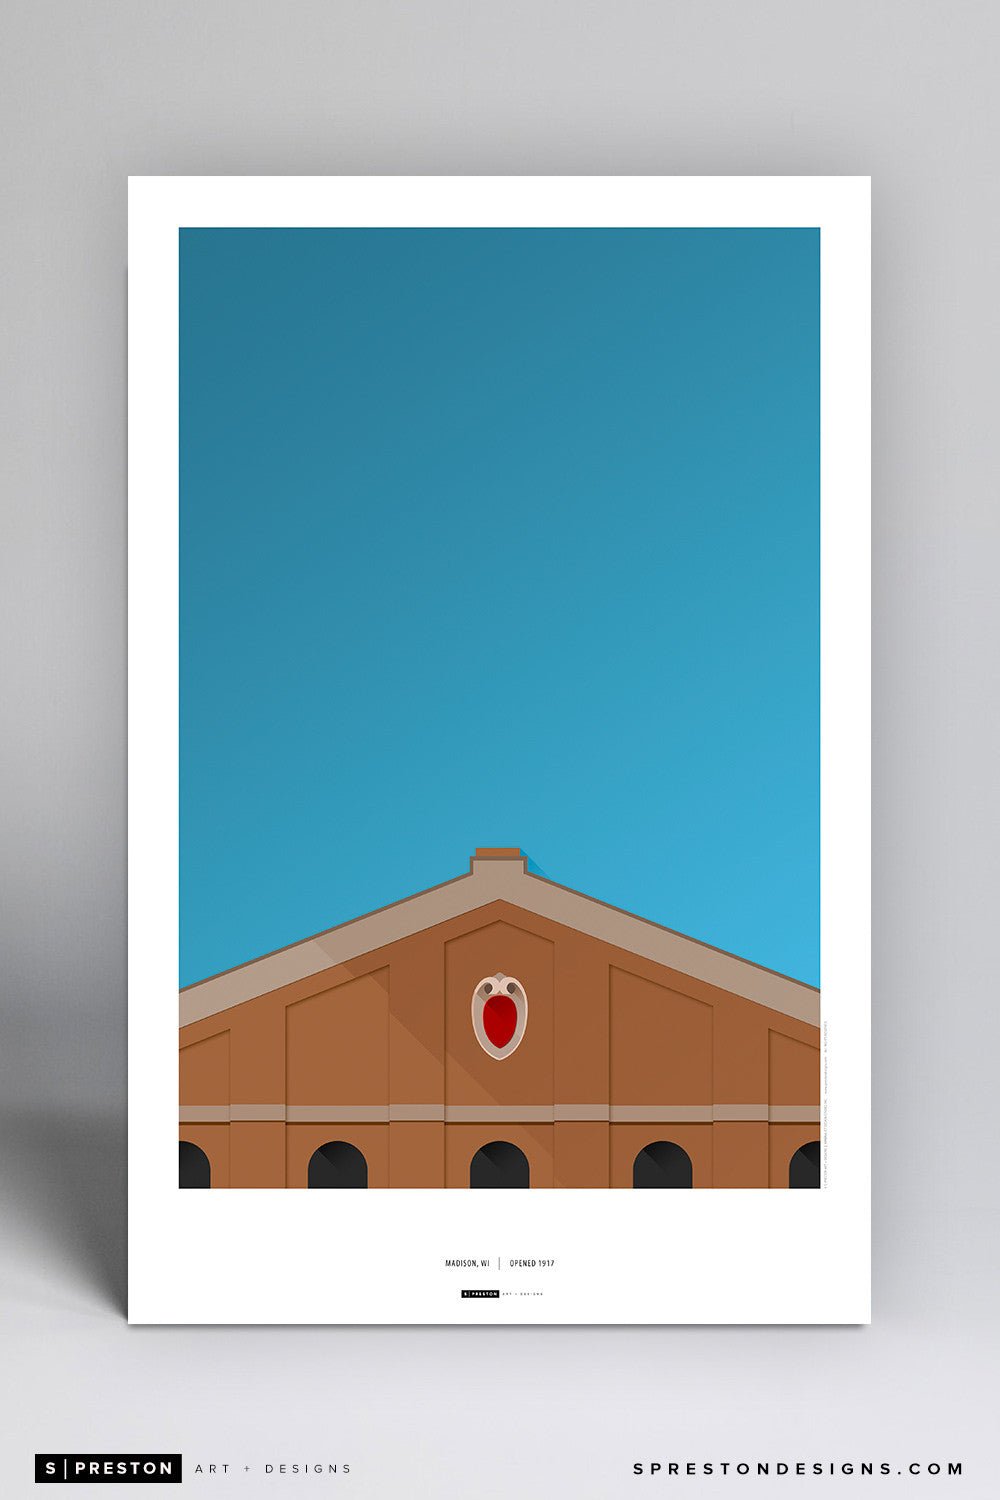 Minimalist Camp Randall Stadium Poster Print University of Wisconsin - S Preston